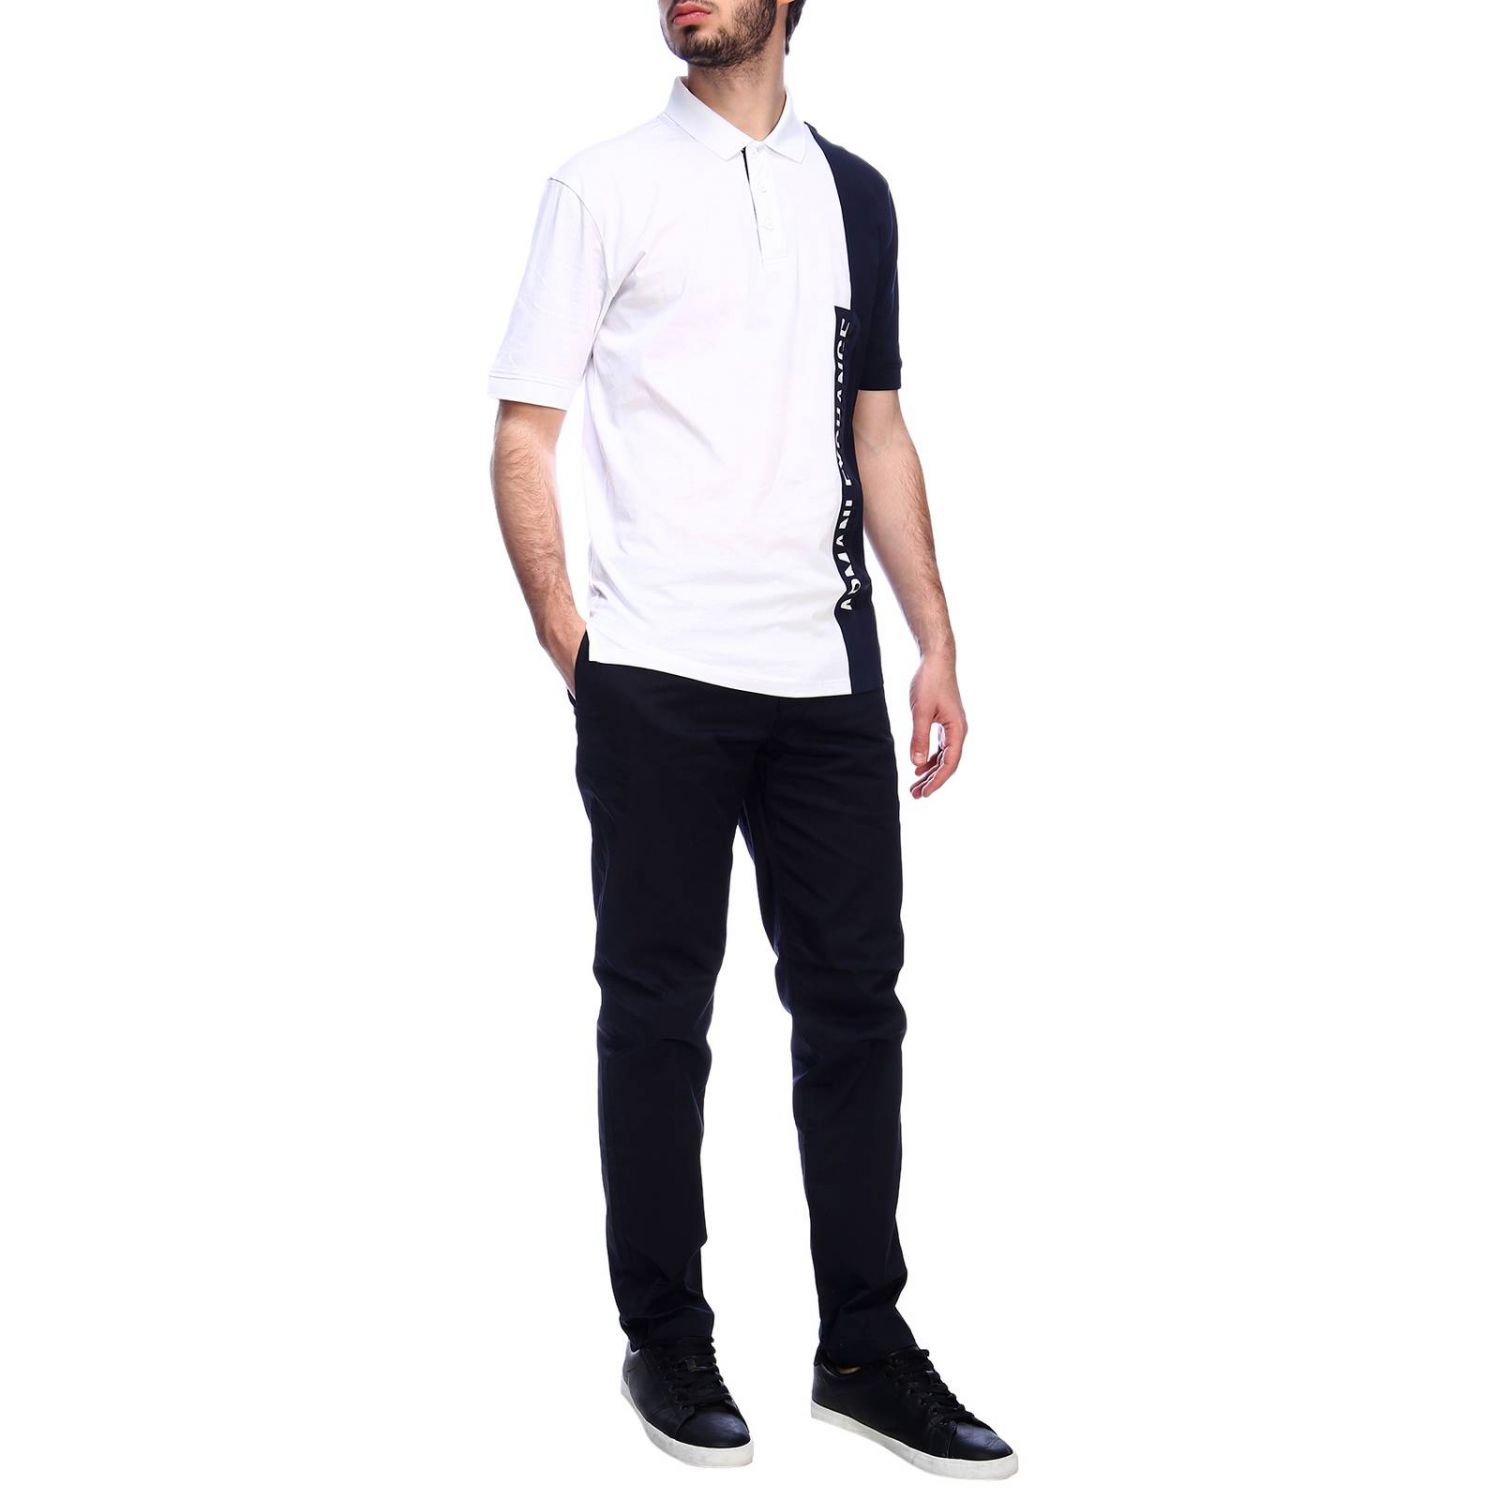 T-shirt men Armani Exchange white 4